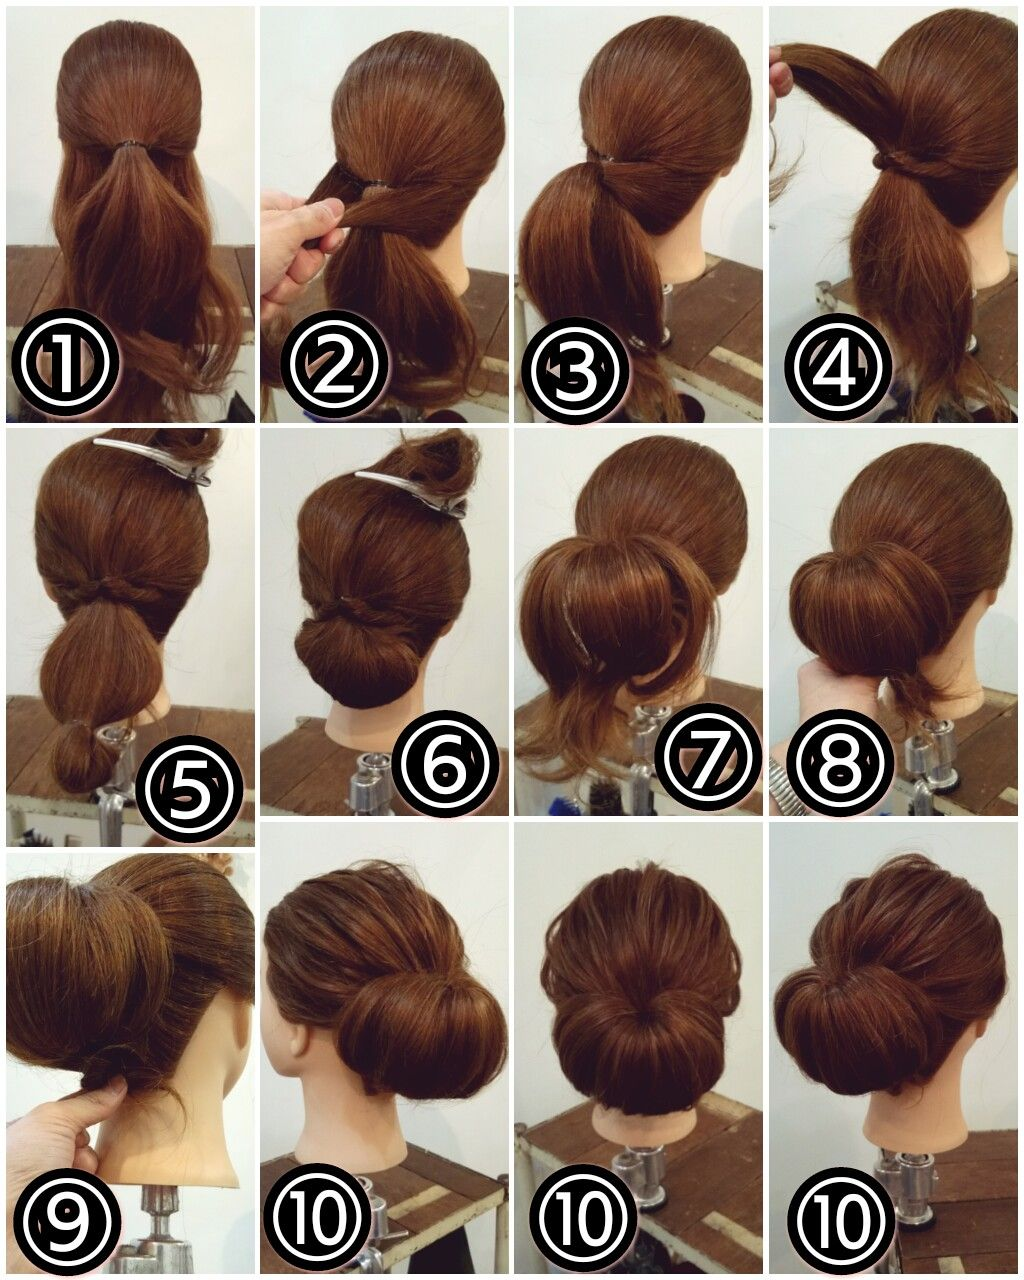 pin by lovely castillo on hairstyles | long hair styles